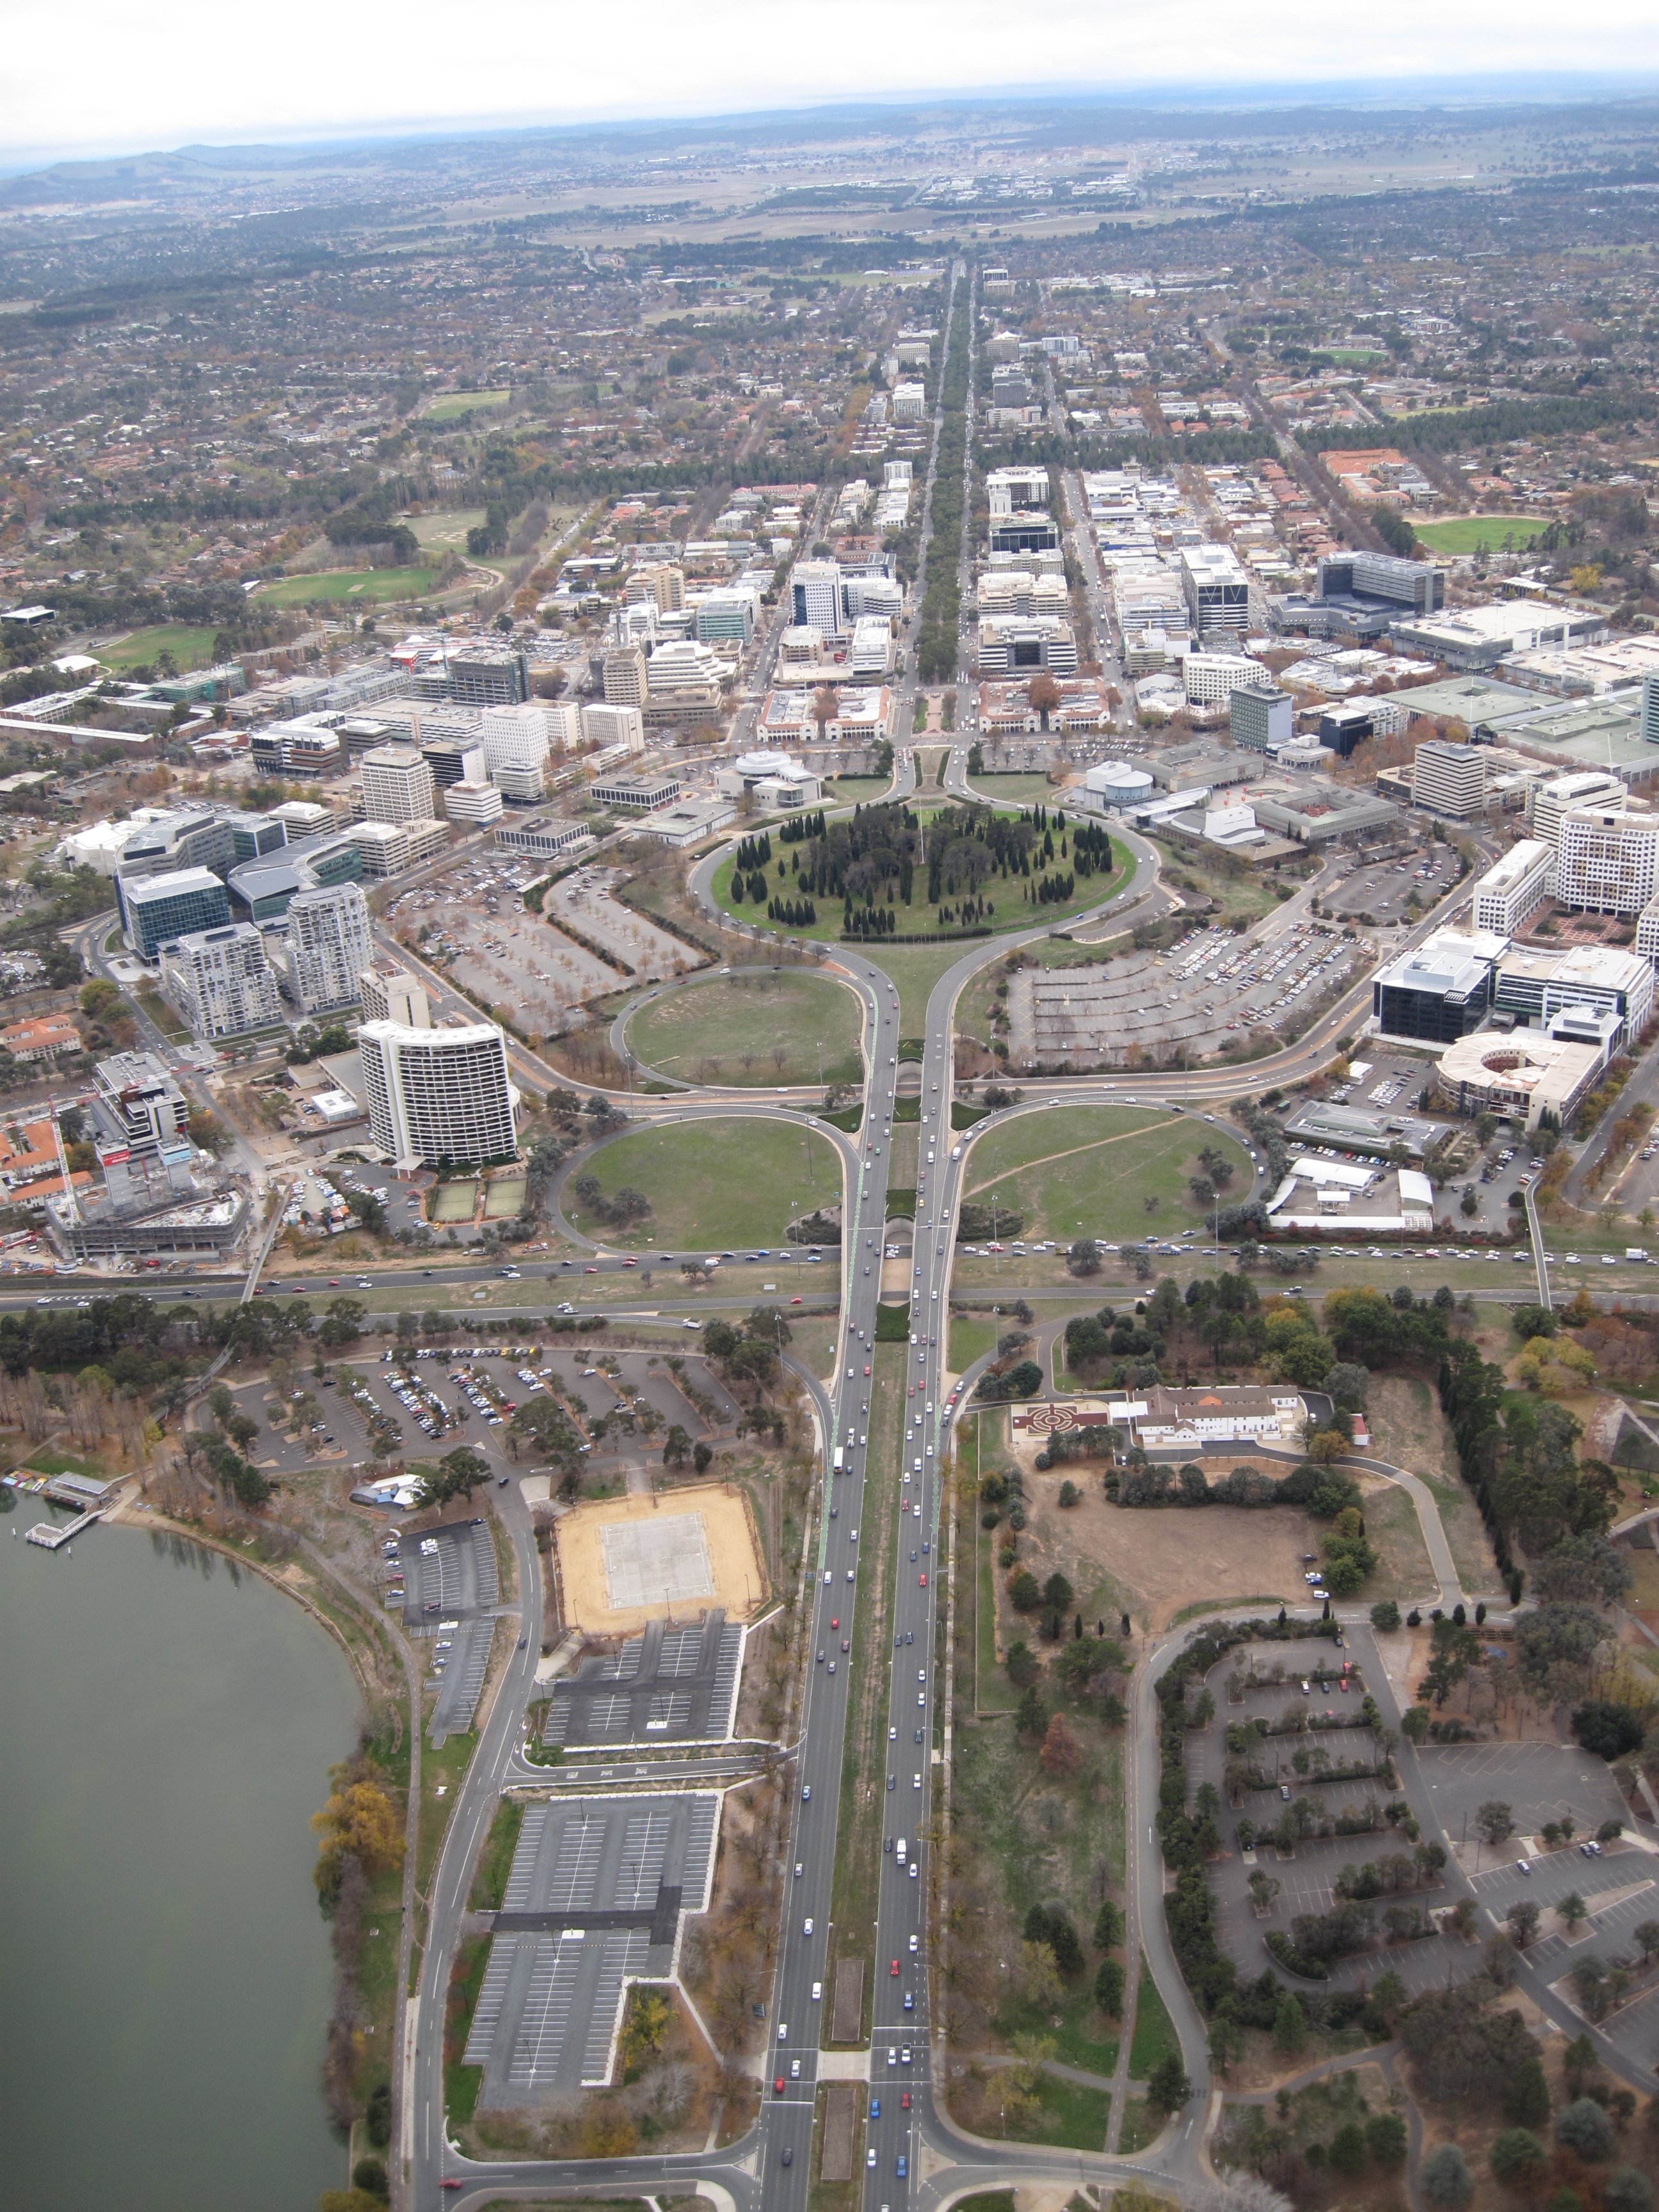 Canberra - Simple English Wikipedia, the free encyclopedia